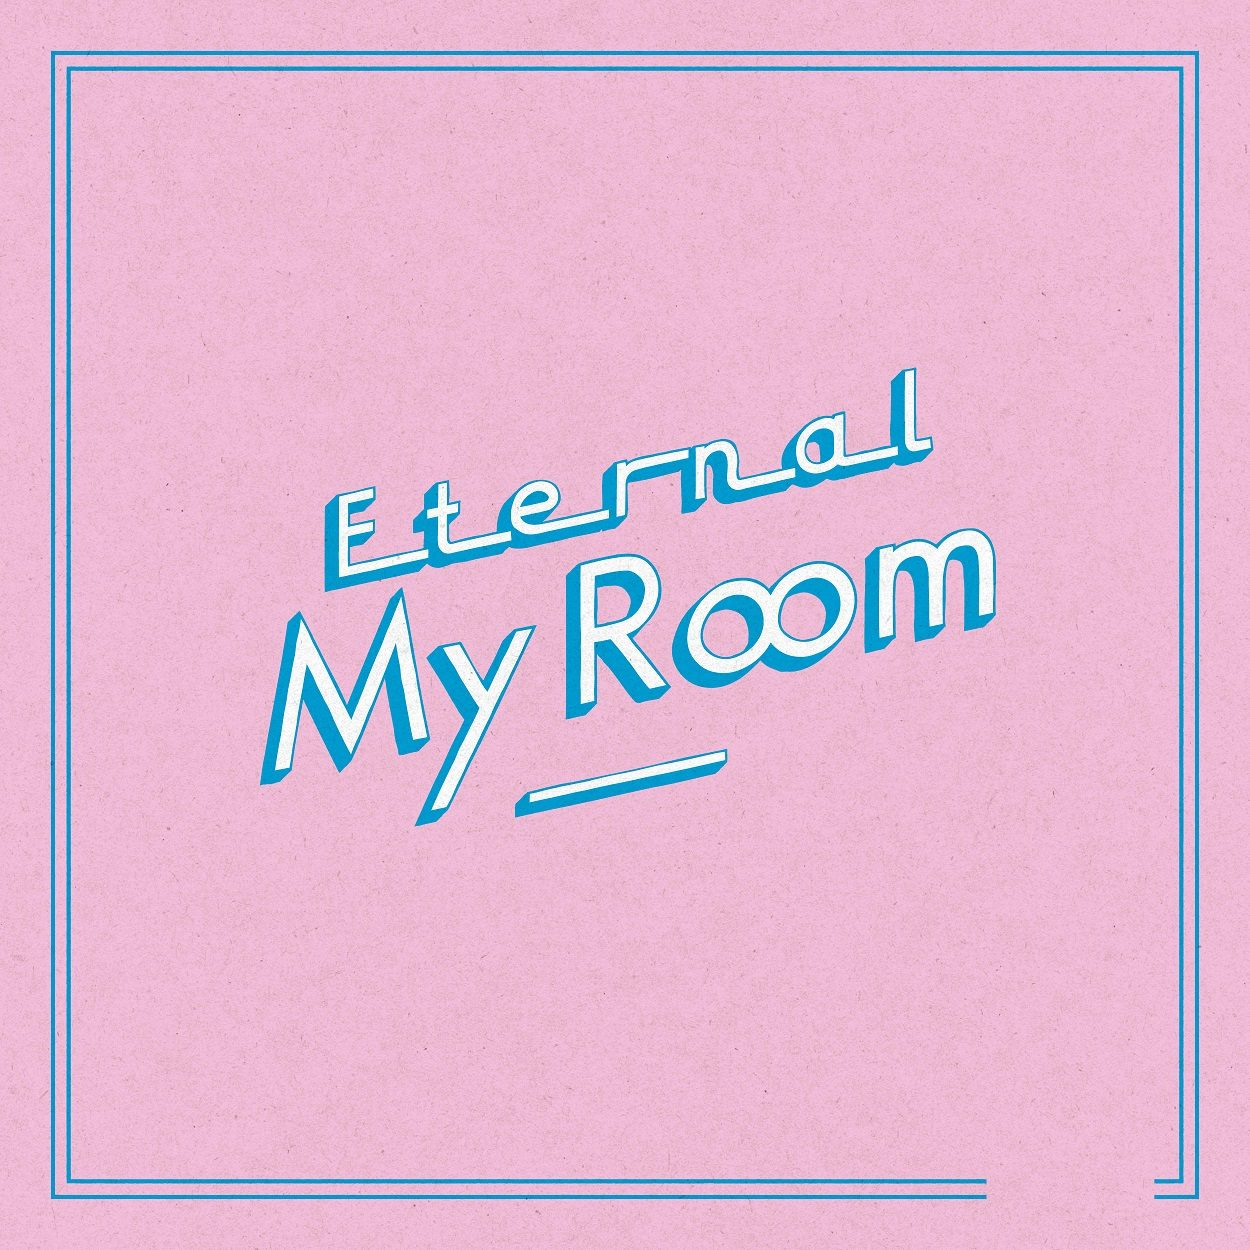 Eternal My Room